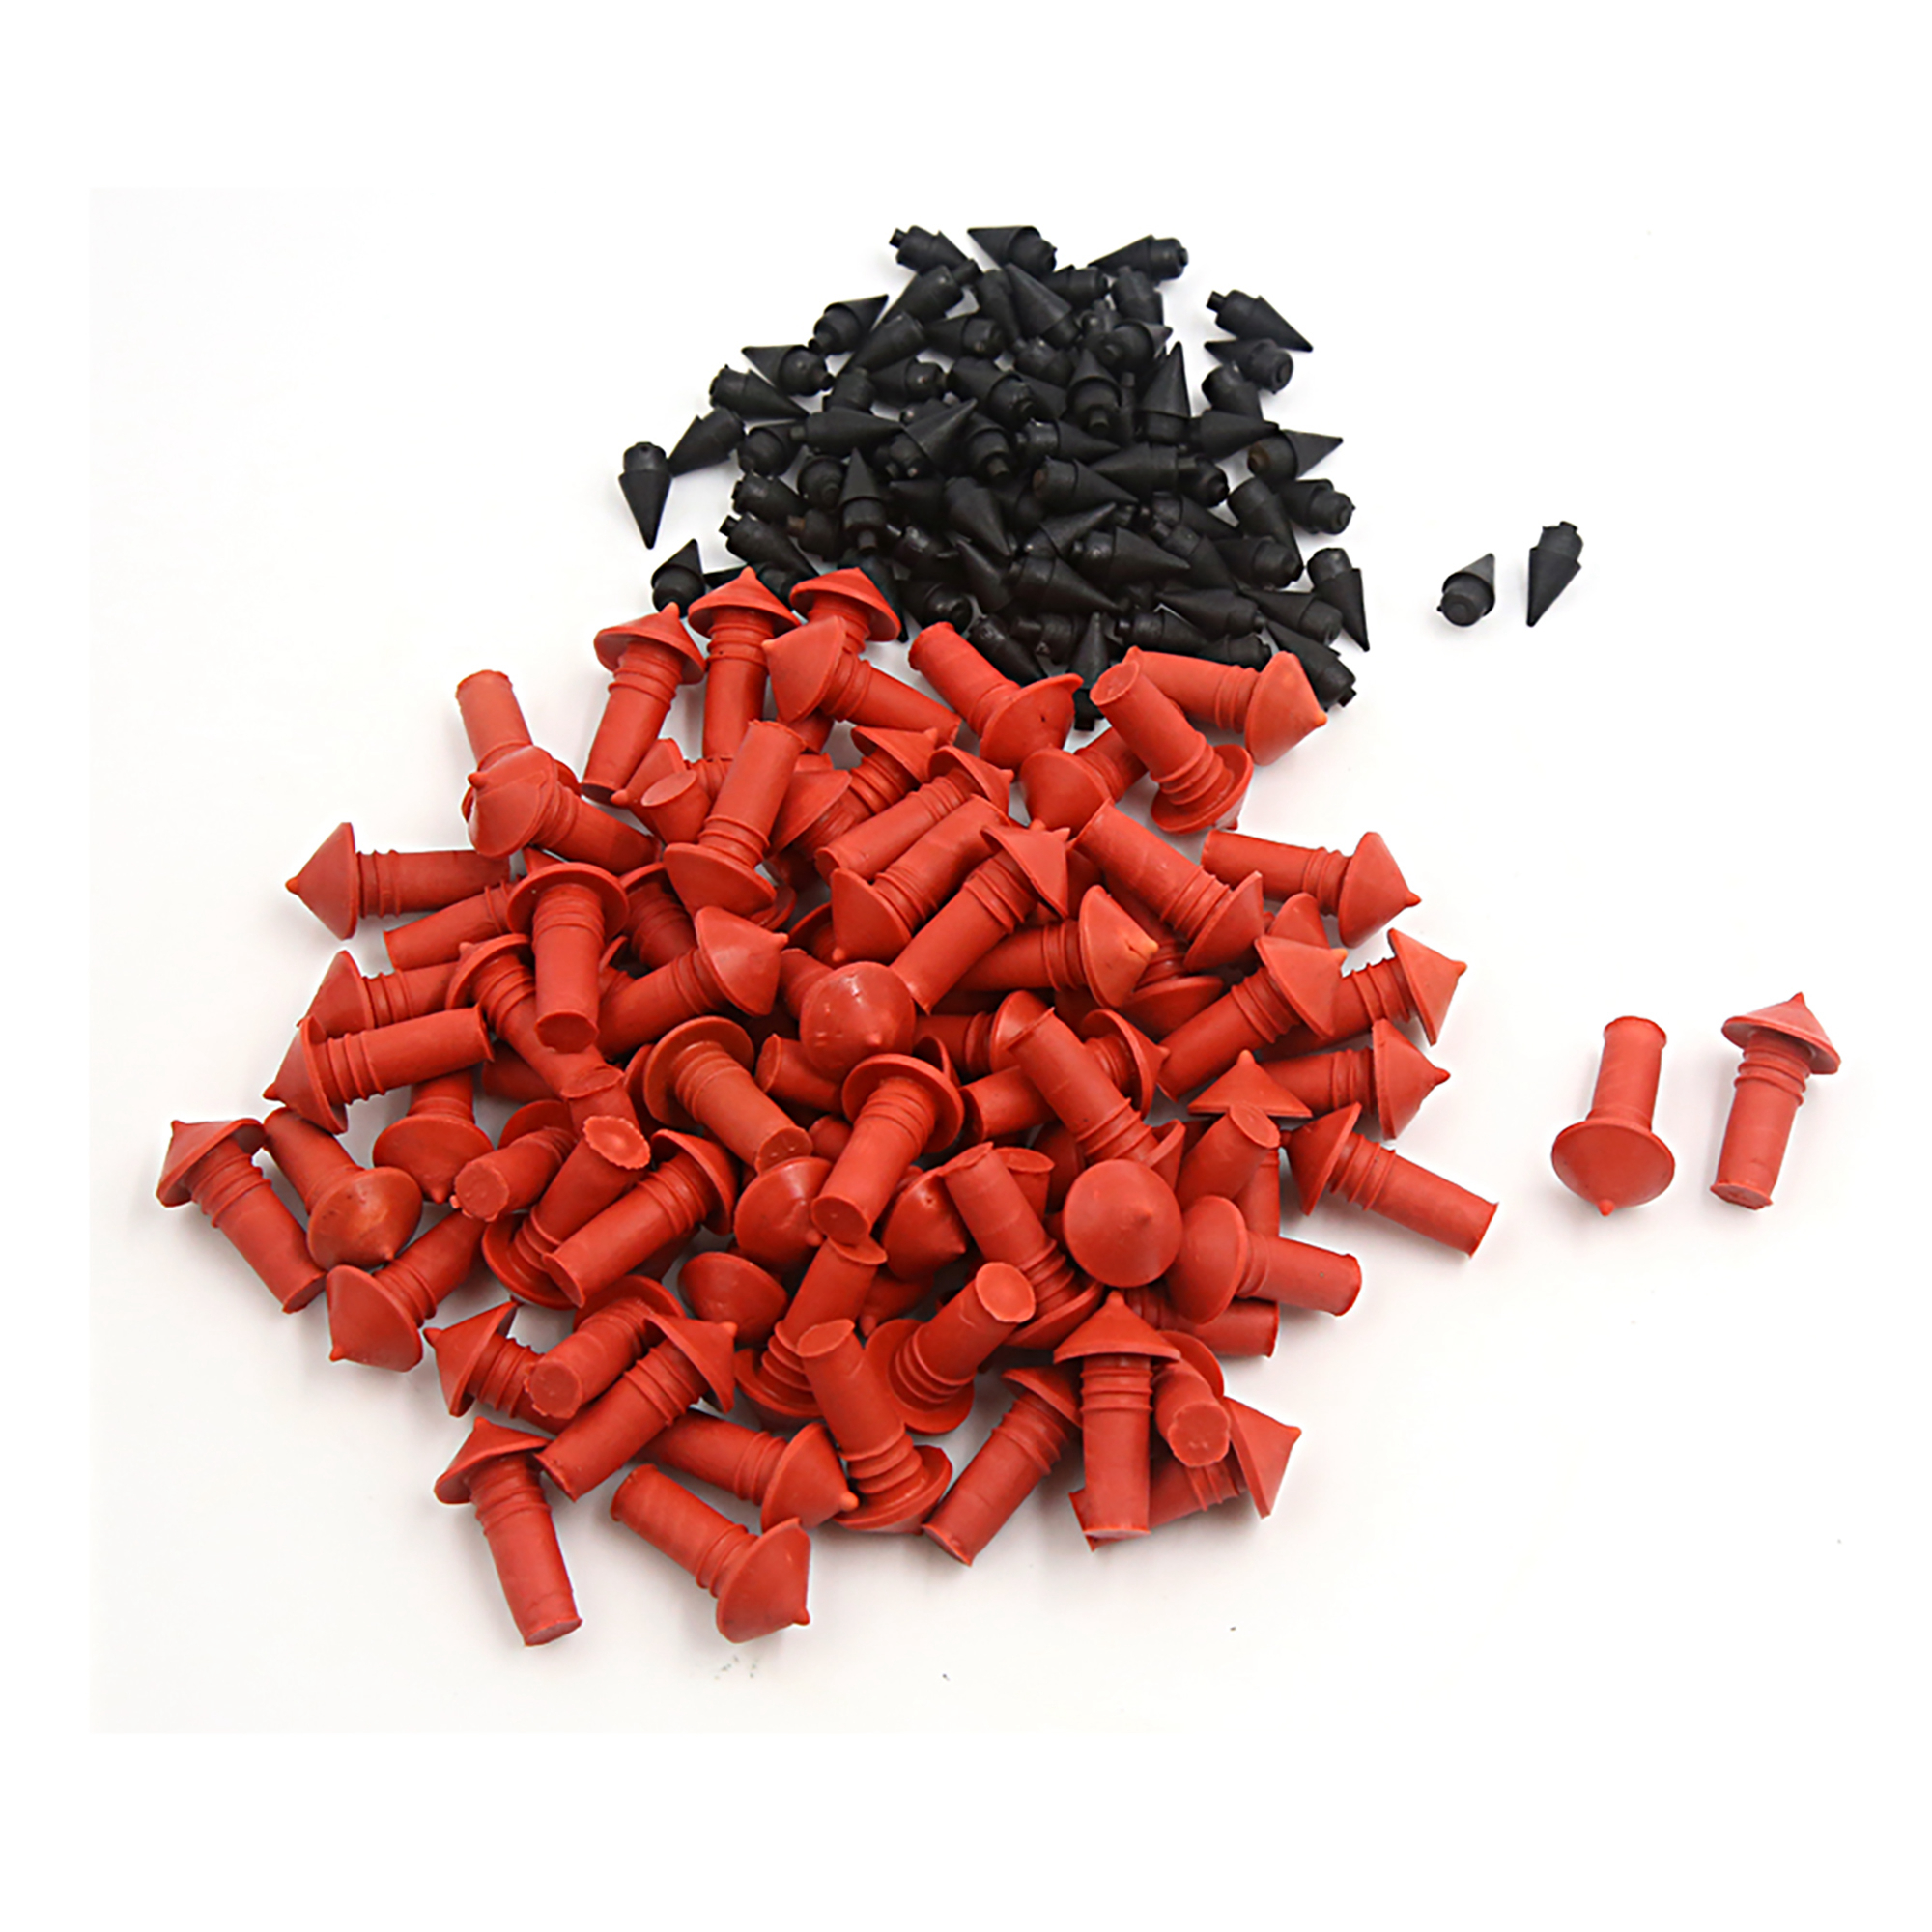 170Pcs Universal Mushroom Shaped Tire Repair Insert Plugs Red Black 7mm